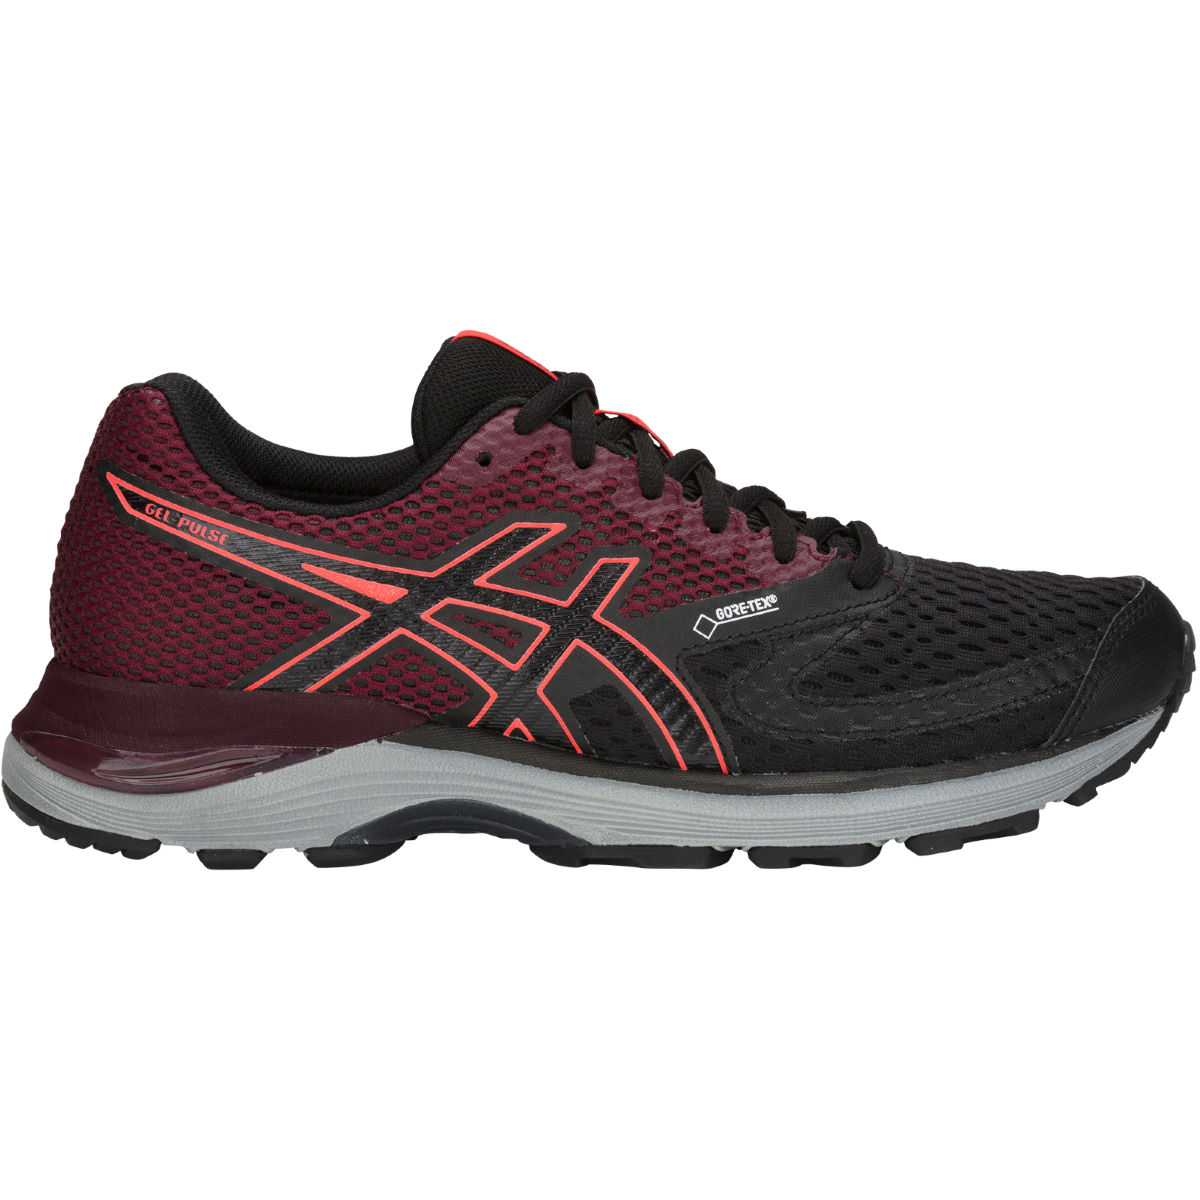 Asics Women's Gel-Pulse 10 GTX Shoes - Zapatillas de trail running